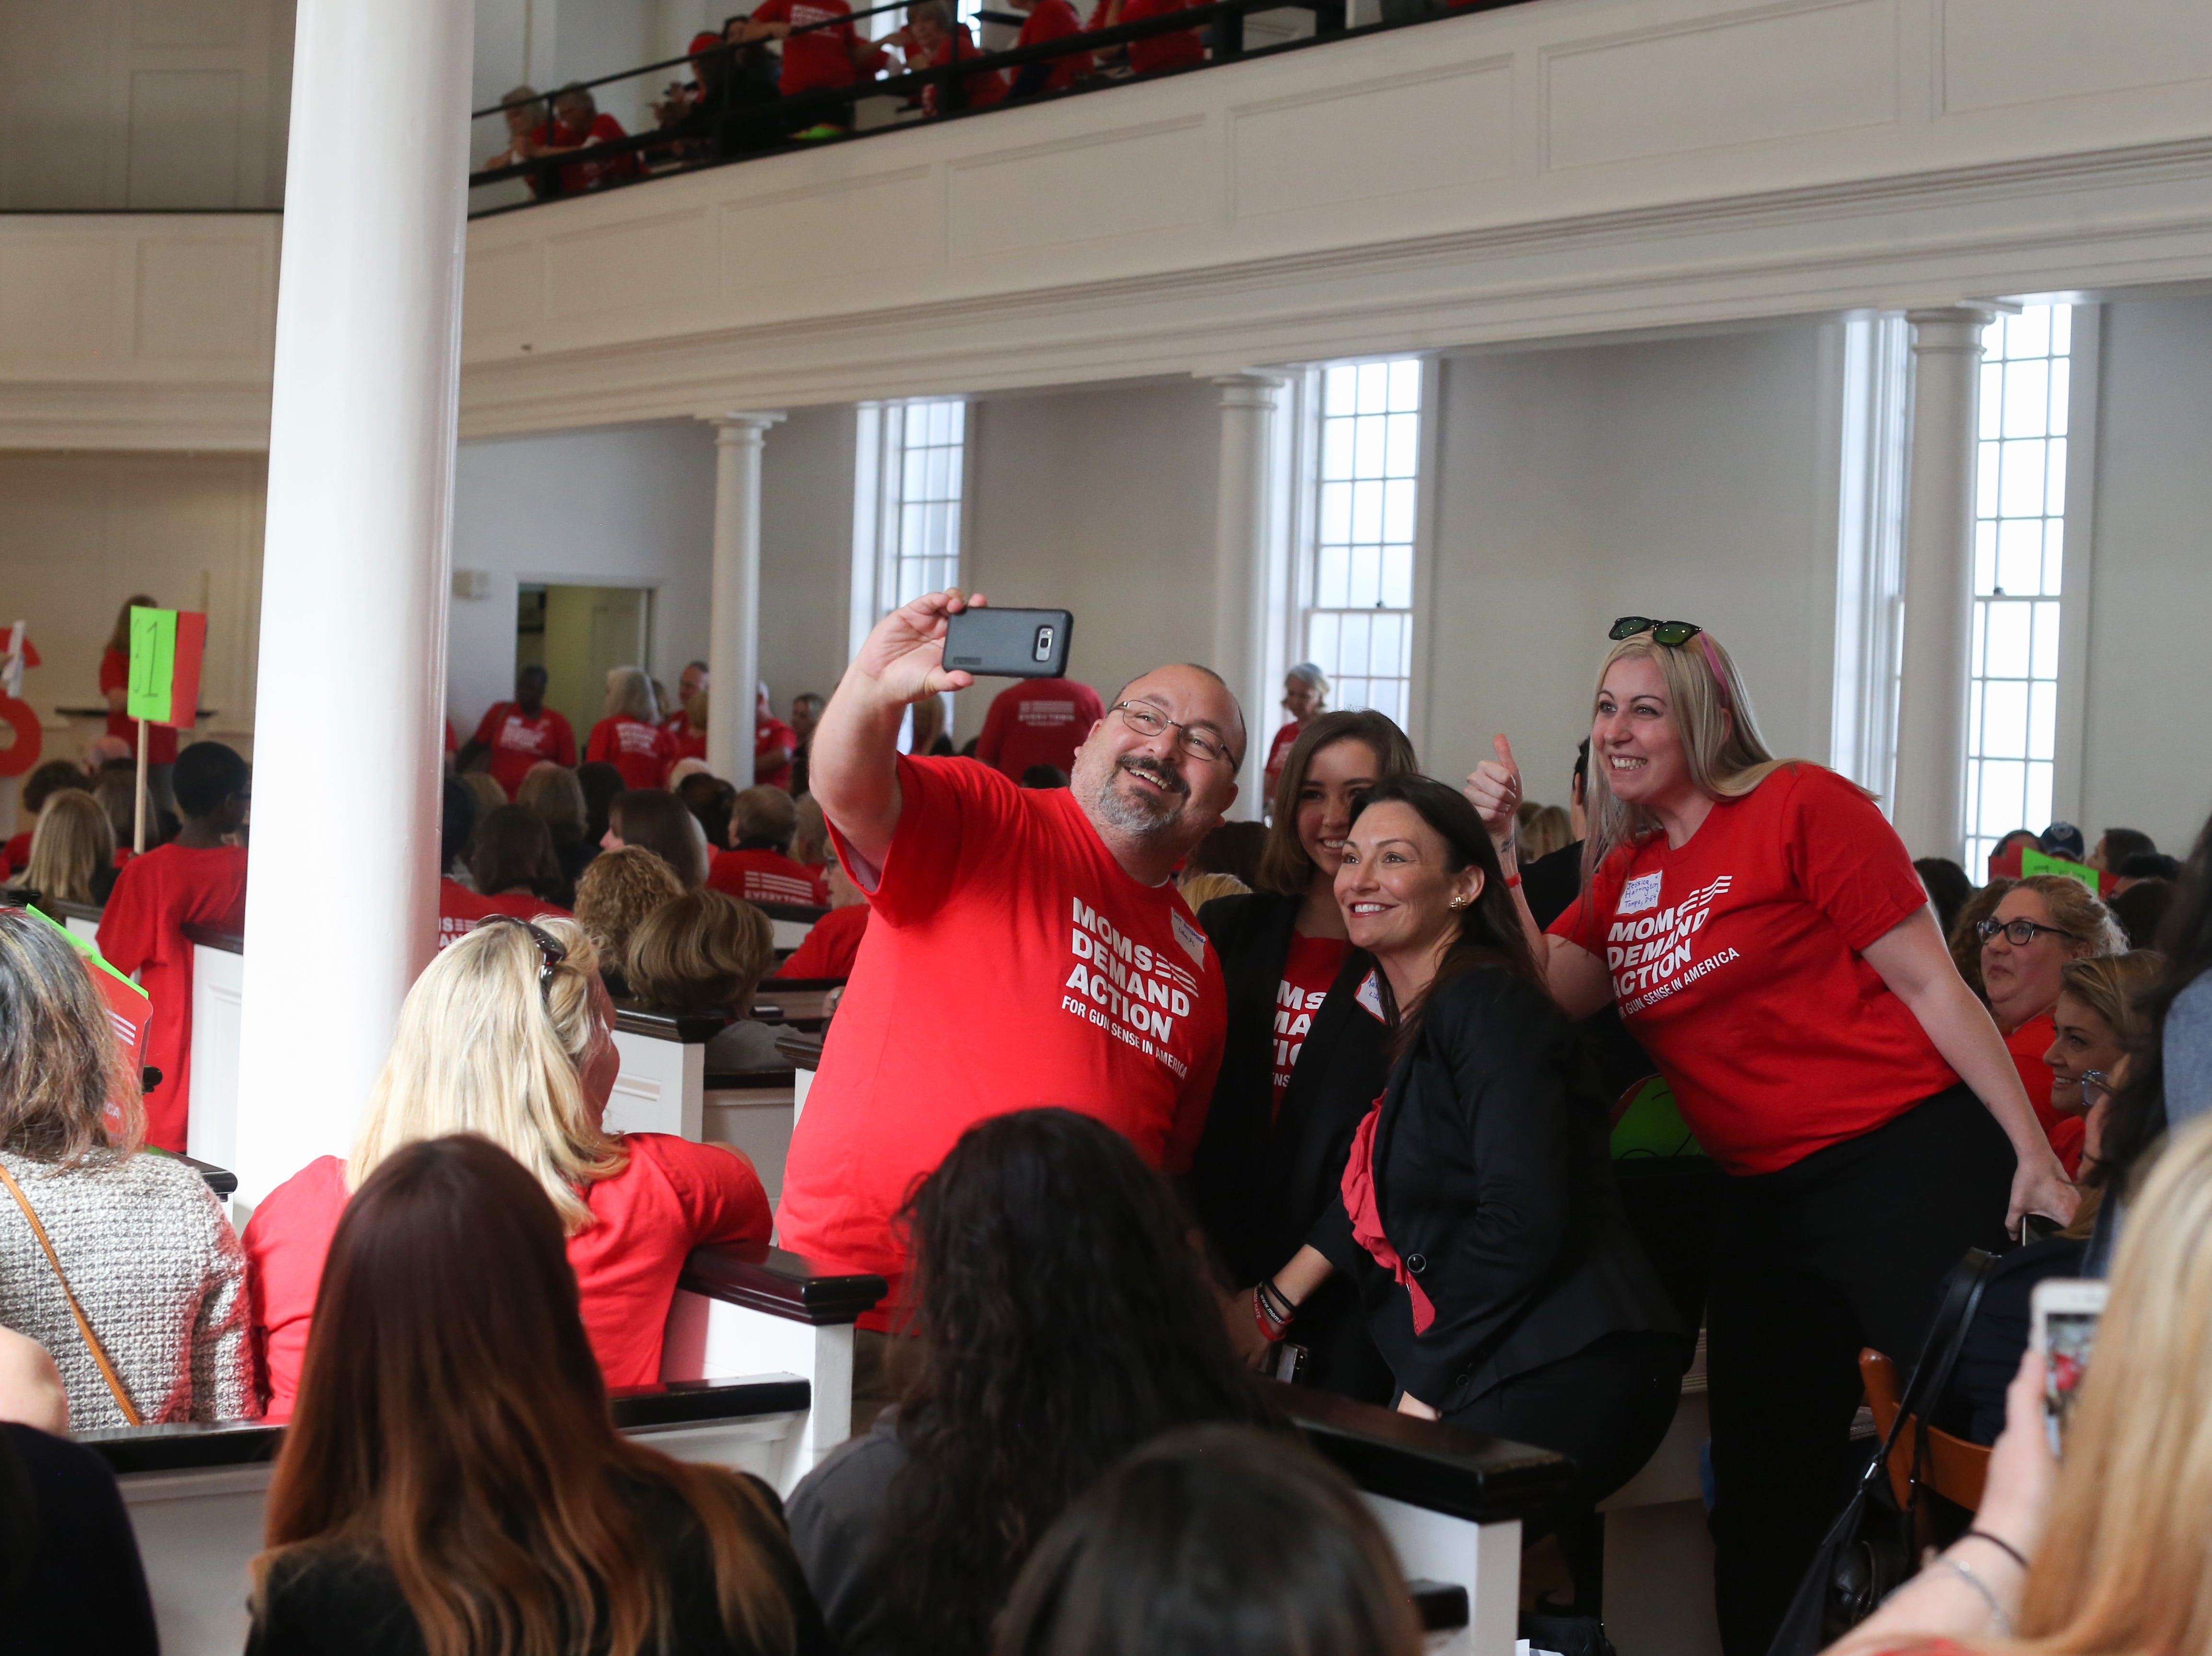 Agriculture Commissioner Nikki Fried is stopped for a selfie on her way out of First Presbyterian Church after addressing the over 500 members of Moms Demand Action who convened there before meeting with lawmakers at the Capitol to lobby for stricter gun laws Wednesday, Feb. 6, 2019.